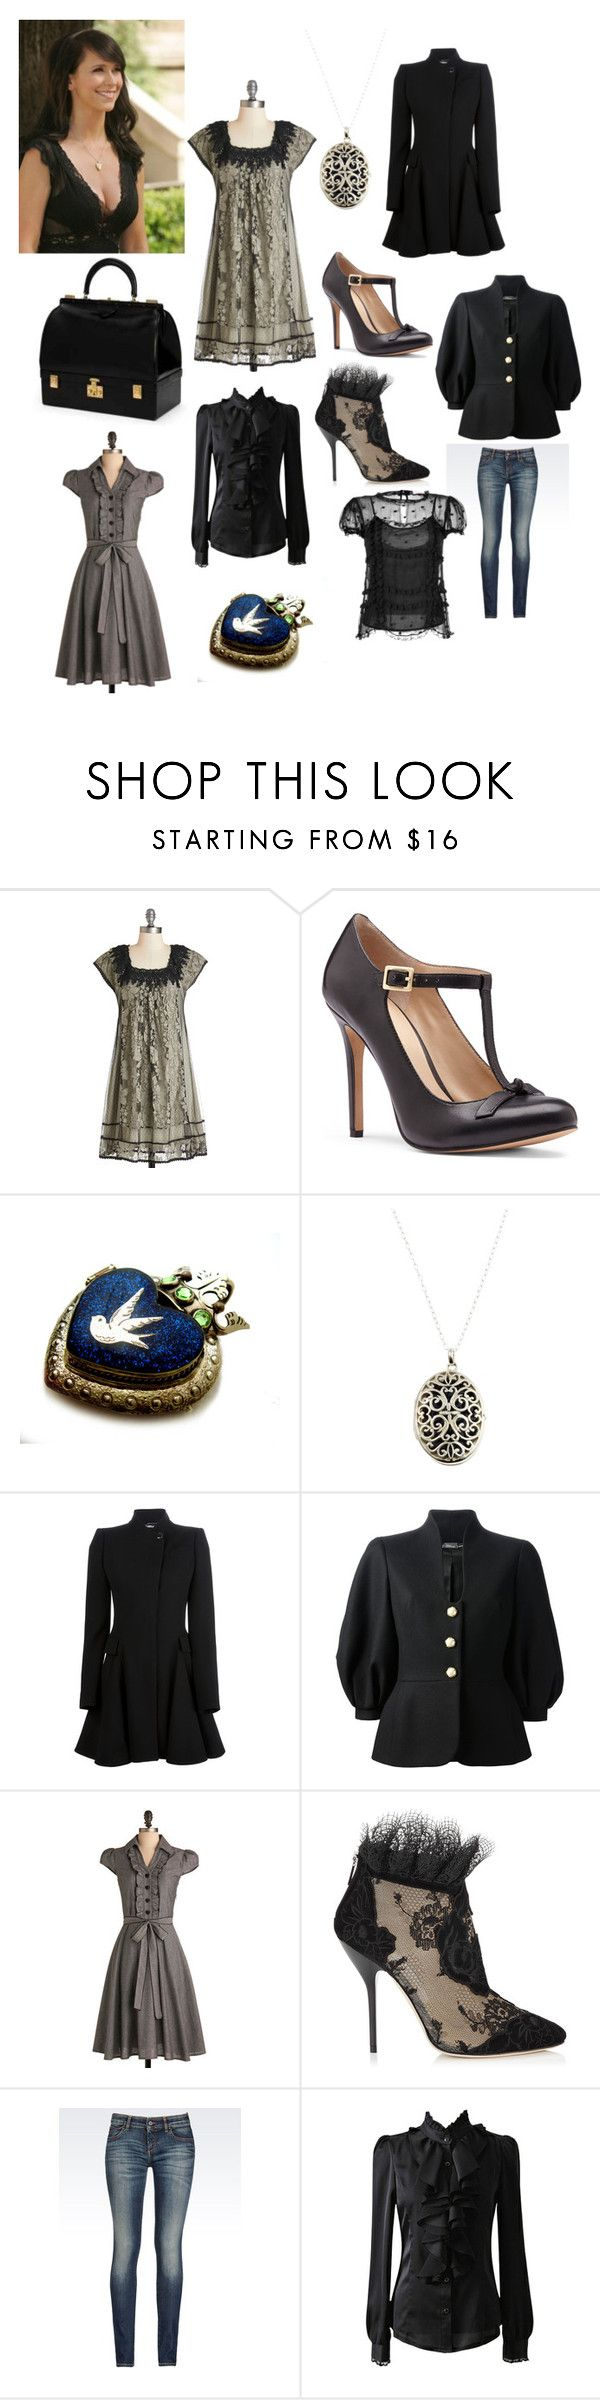 """Melinda Gordon"" by inspyredvintage ❤ liked on Polyvore featuring Sole Society, Nina Breddal, Hermès, Alexander McQueen, Jimmy Choo, Armani Jeans and RED Valentino"